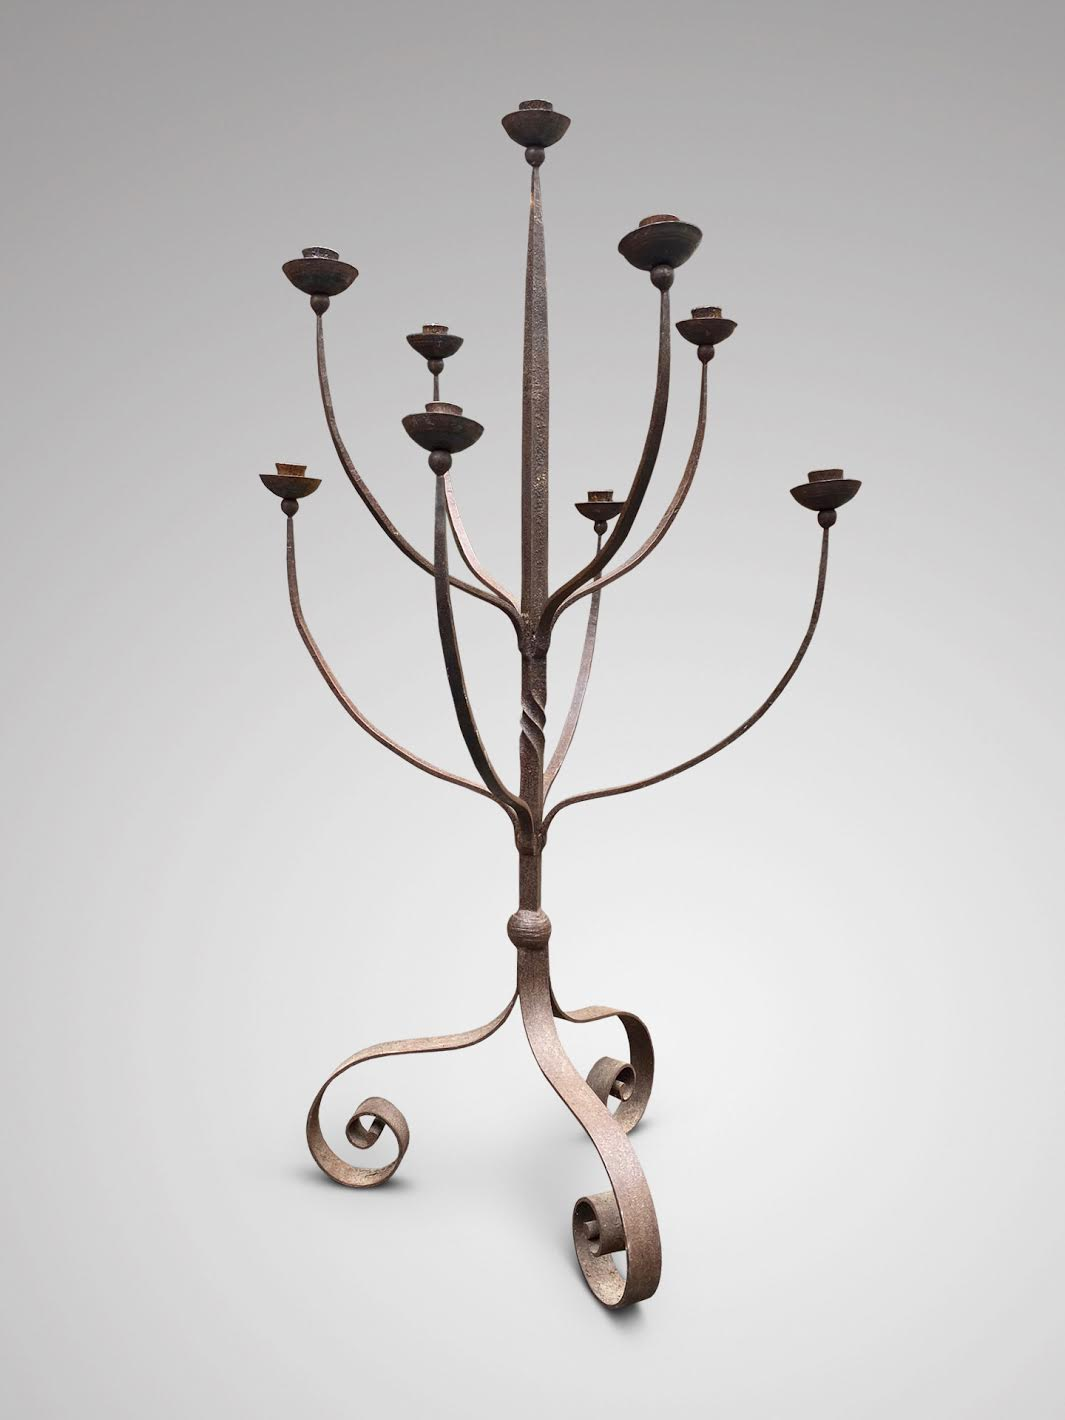 20C LARGE WROUGHT IRON STANDING CANDELABRA